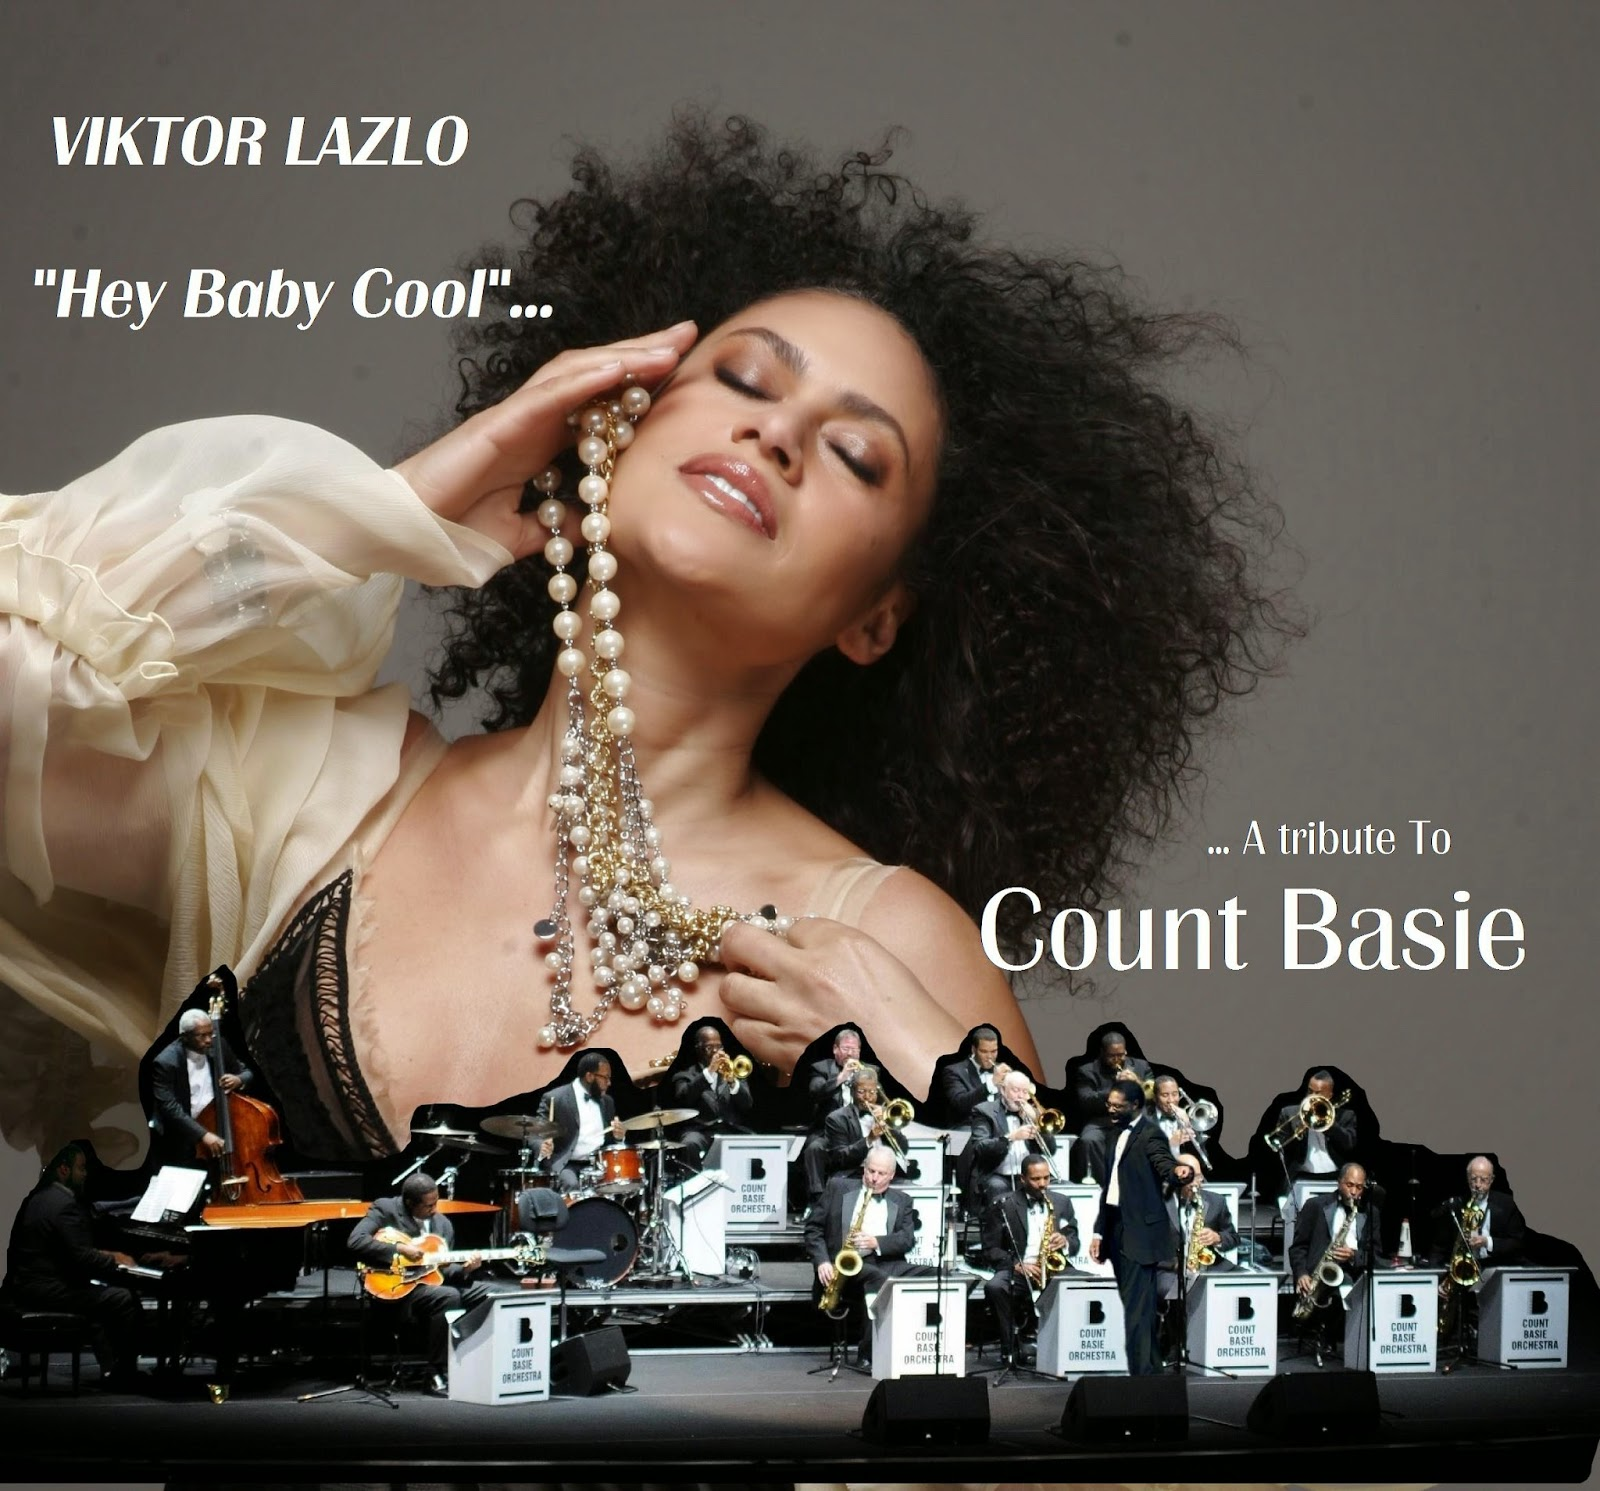 concert viktor lazlo tribute to count basie